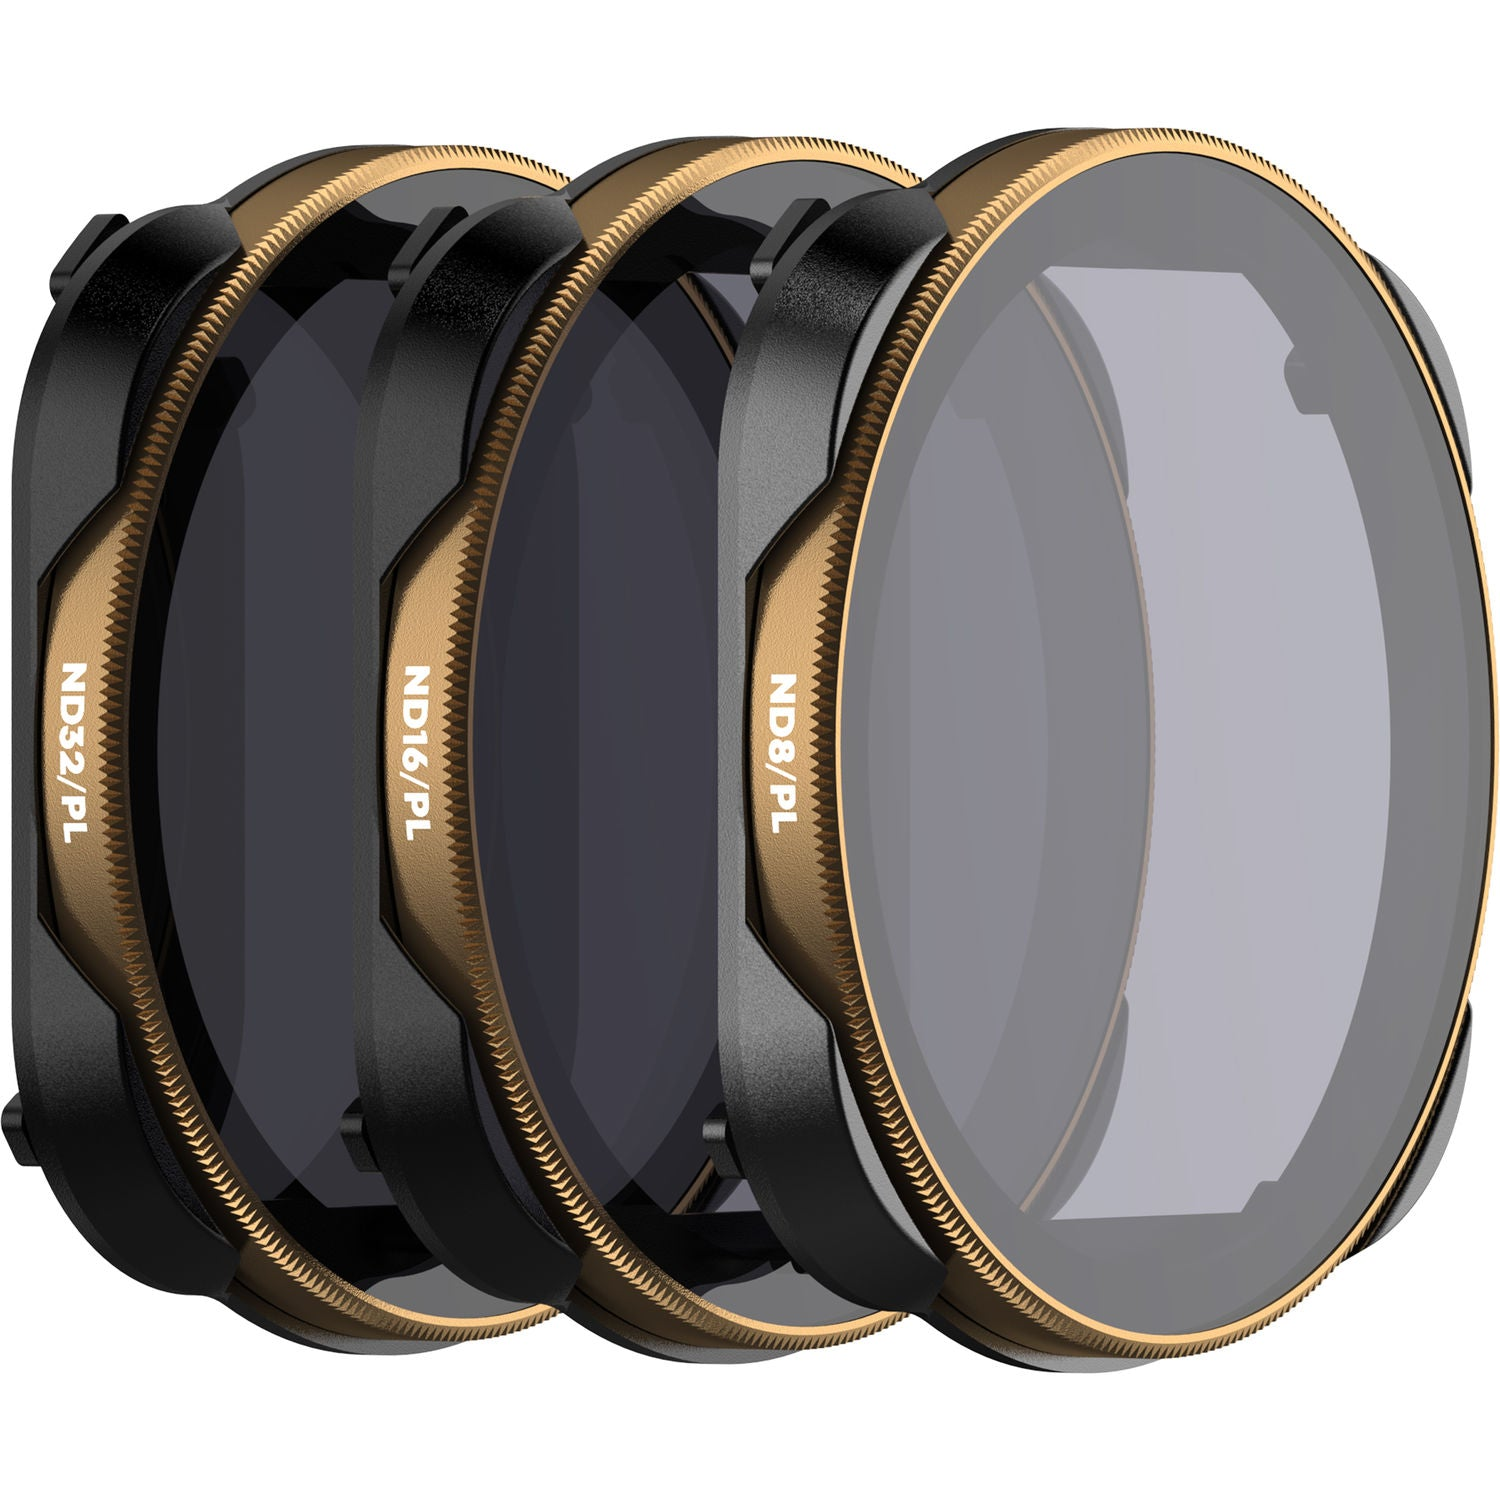 PolarPro DJI Mavic 2 Pro Cinema Series Vivid Filter 3-Pack